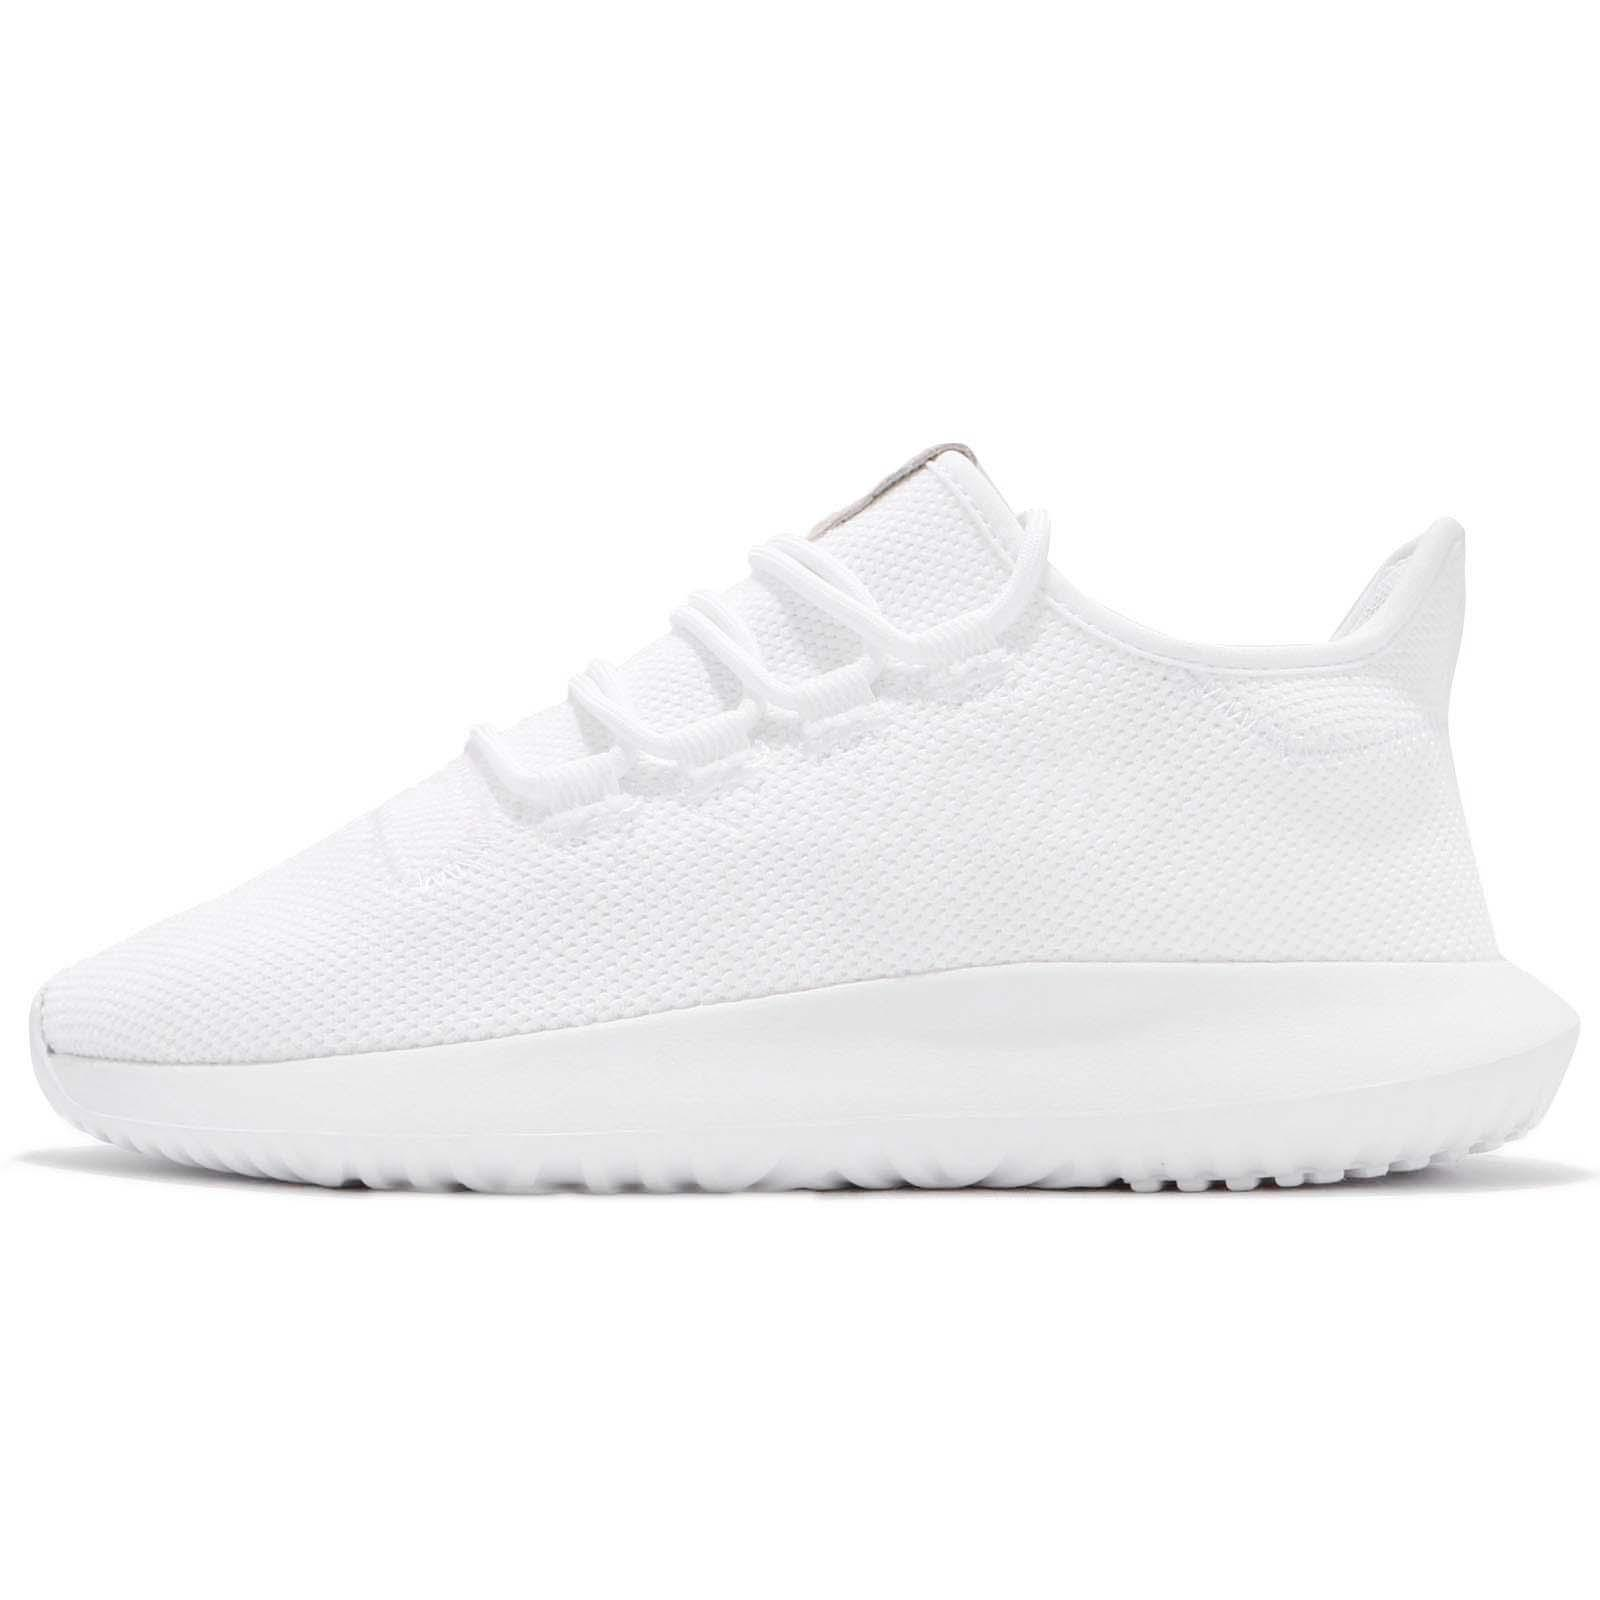 dd98055d593110 adidas Originals Tubular Shadow White Men Running Shoes Sneakers Trainers  CG4563